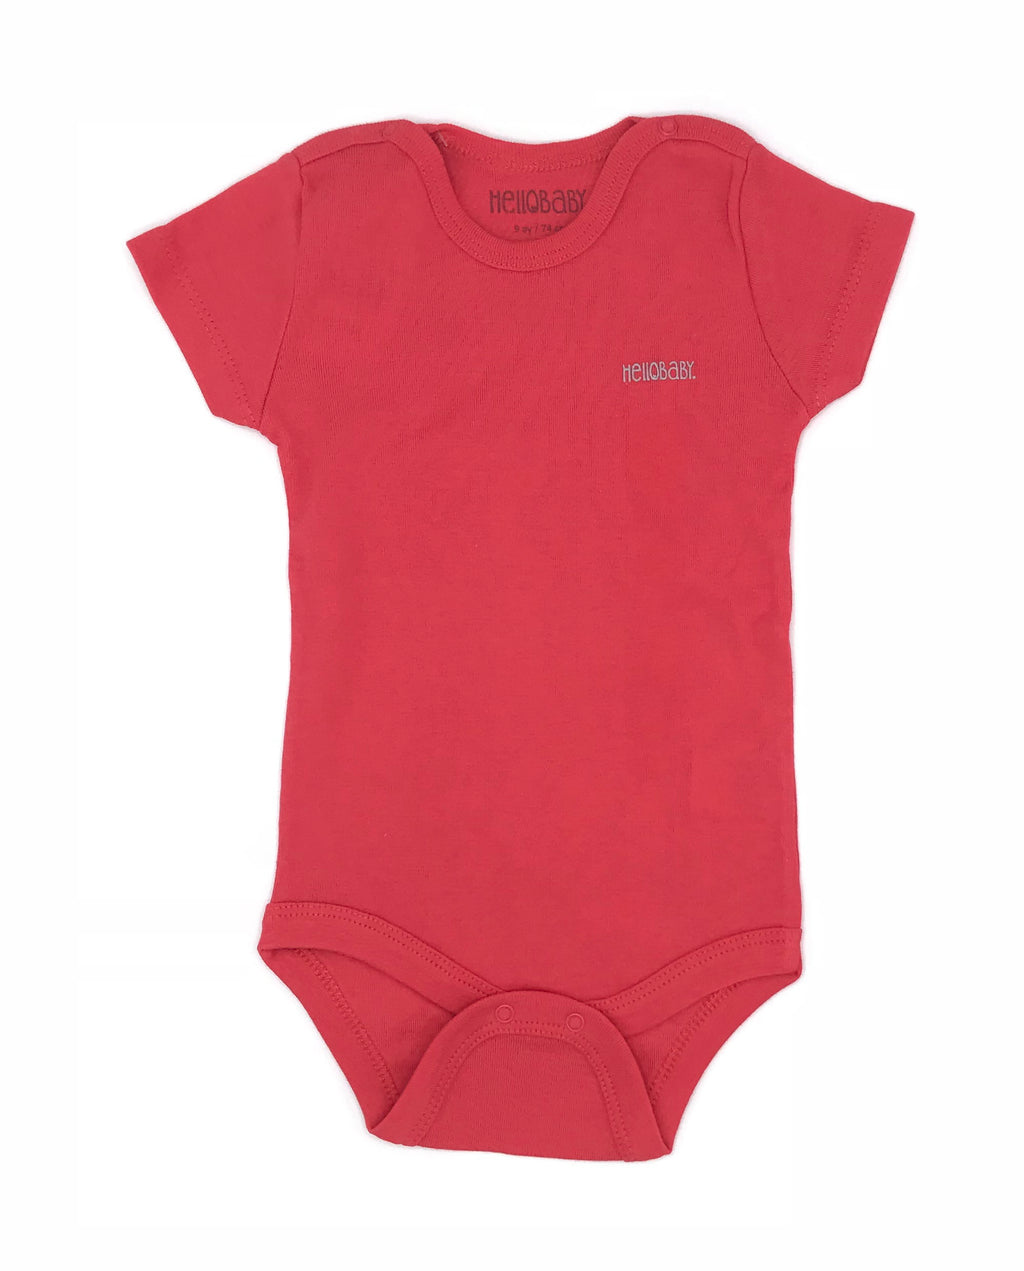 HelloBaby Short Sleve Bodysuit for Baby Girls